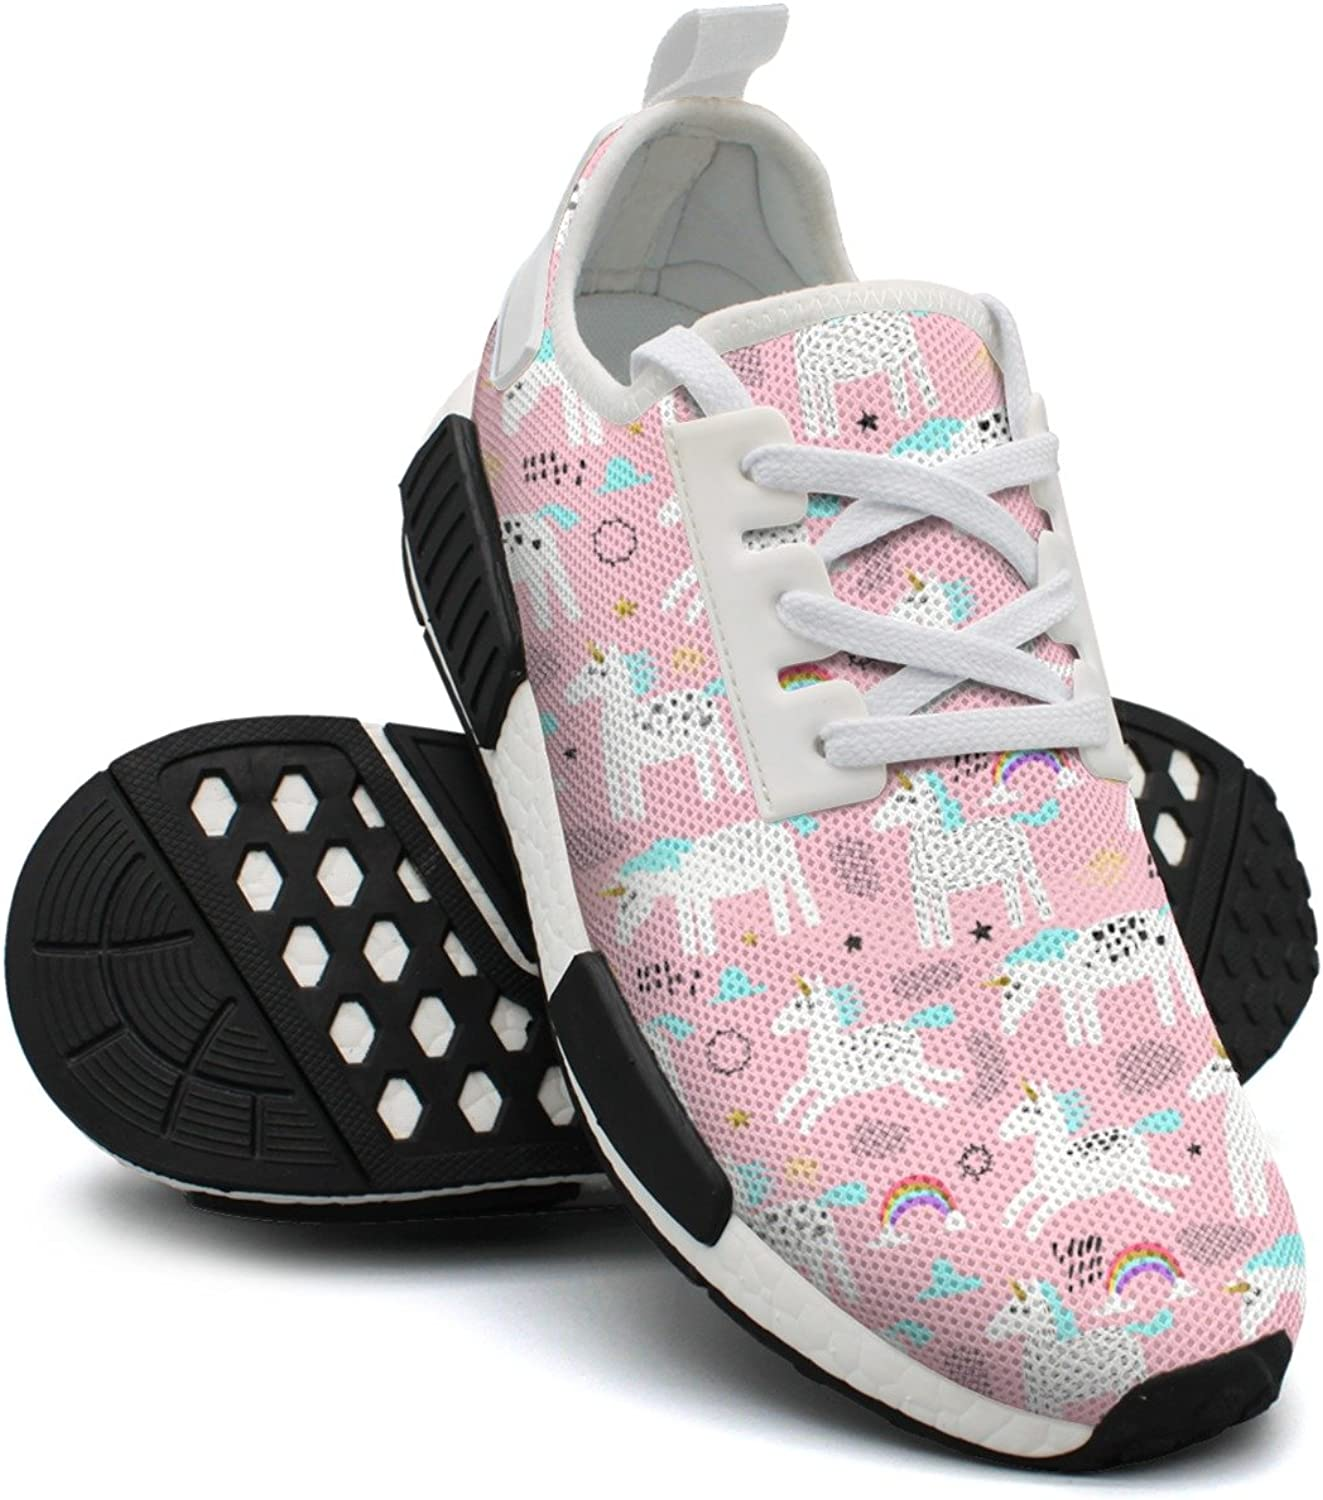 Ktyyuwwww Women Girls colorful Neutral Pink Magic Unicorns and Rainbow Cool Casual Running shoes